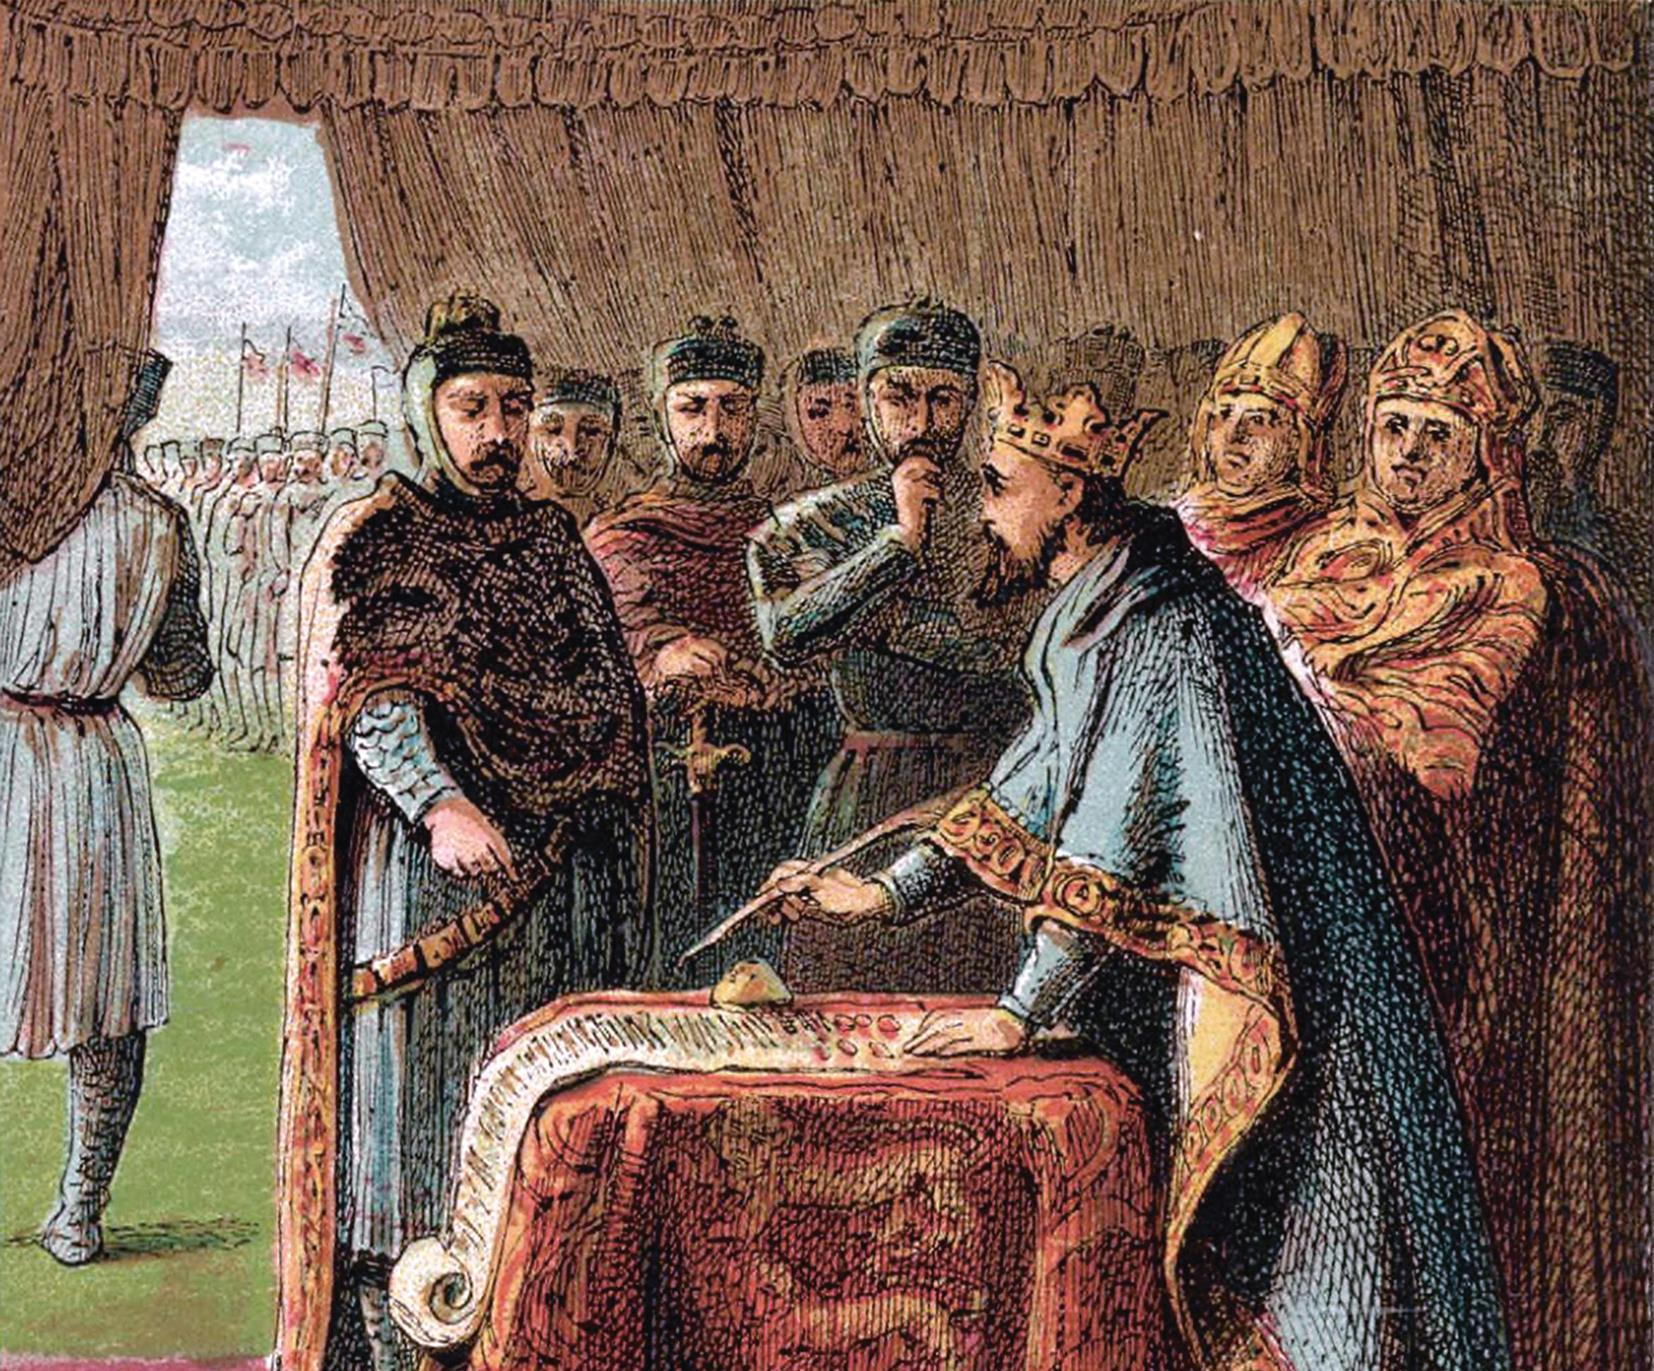 1215 magna carta book review Magna carta: the foundation of freedom 1215-2015 9 apr about an englishman who rose in the years of turmoil leading up to the magna carta book format.